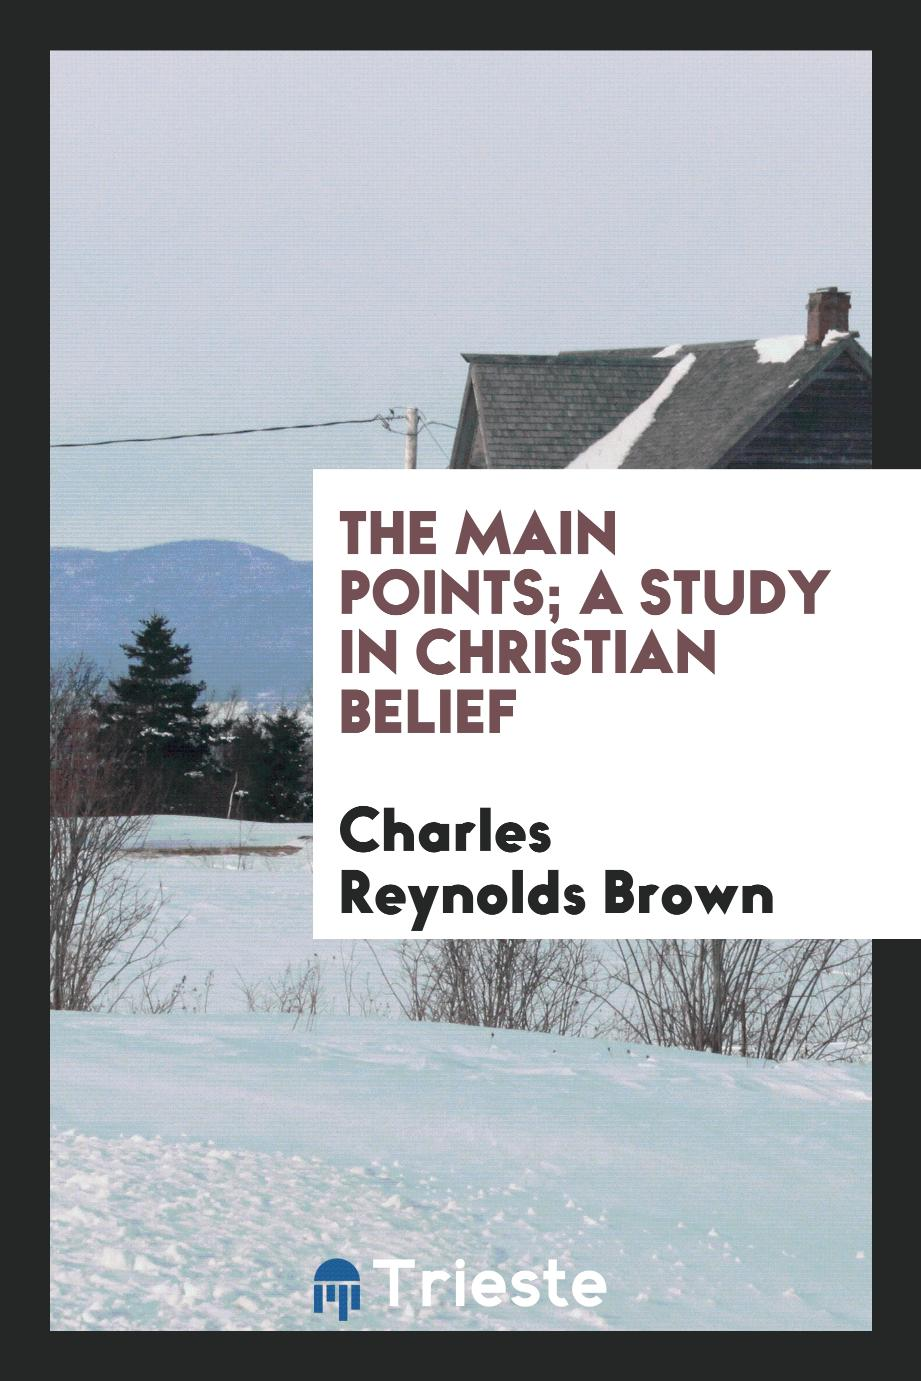 The main points; a study in Christian belief